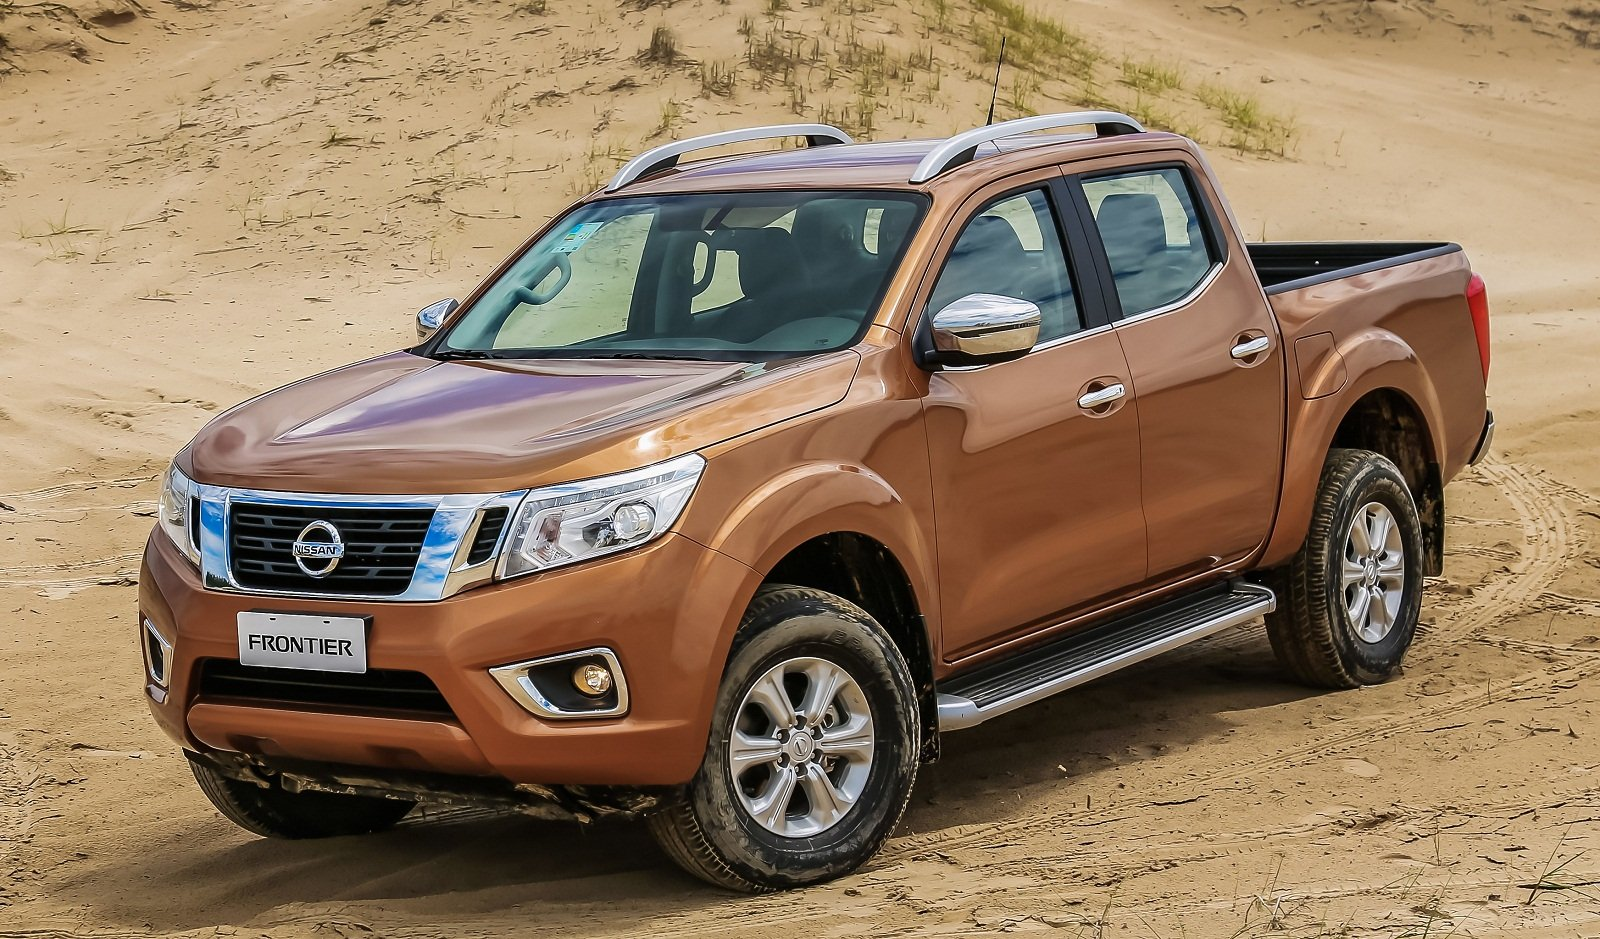 Nissan Frontier é escolhida a Picape do Ano 2017 pela revista especializada Robb Report